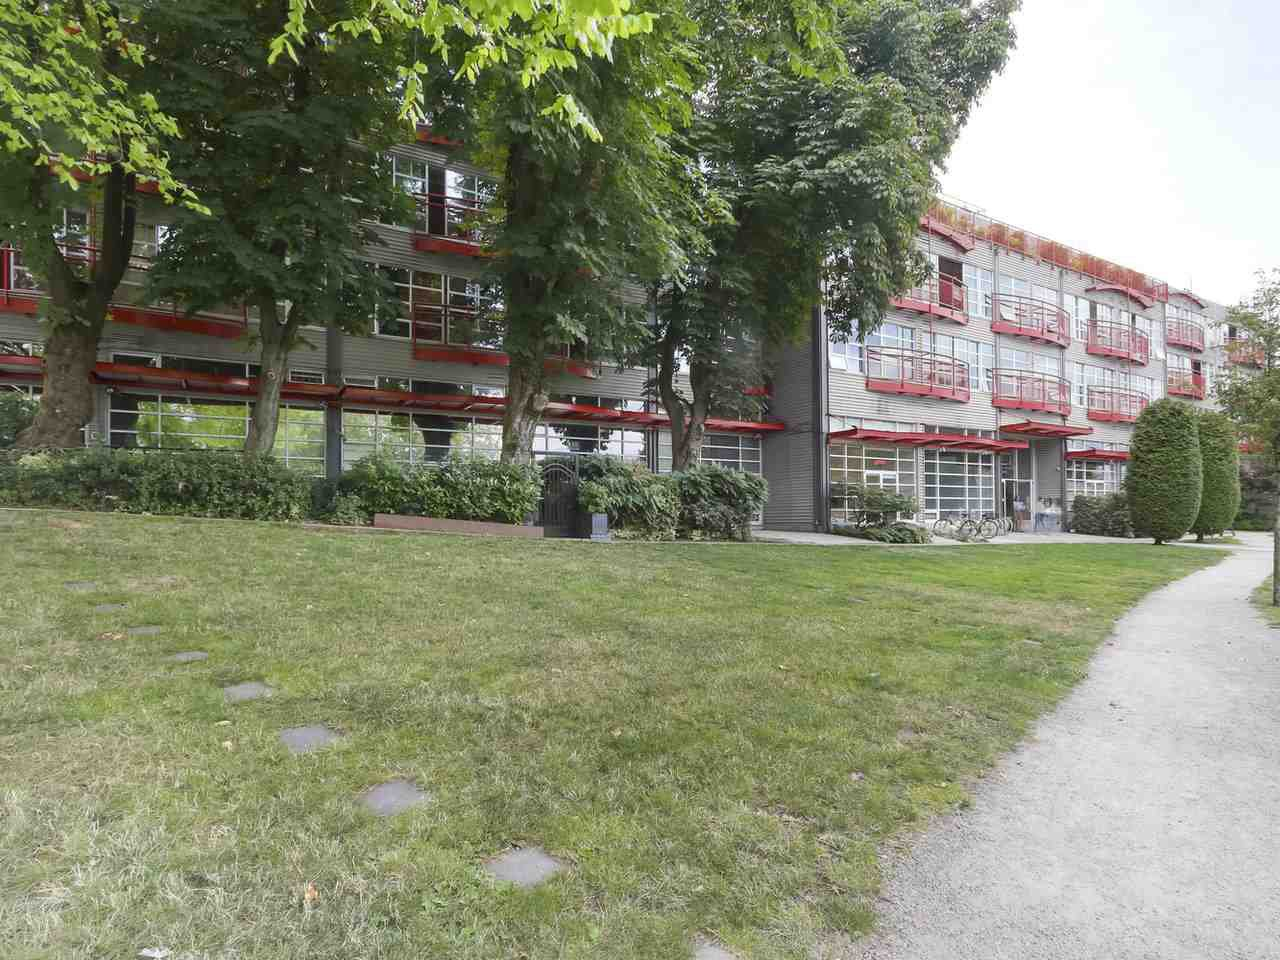 """Main Photo: 419 350 E 2ND Avenue in Vancouver: Mount Pleasant VE Condo for sale in """"MAINSPACE"""" (Vancouver East)  : MLS®# R2394505"""